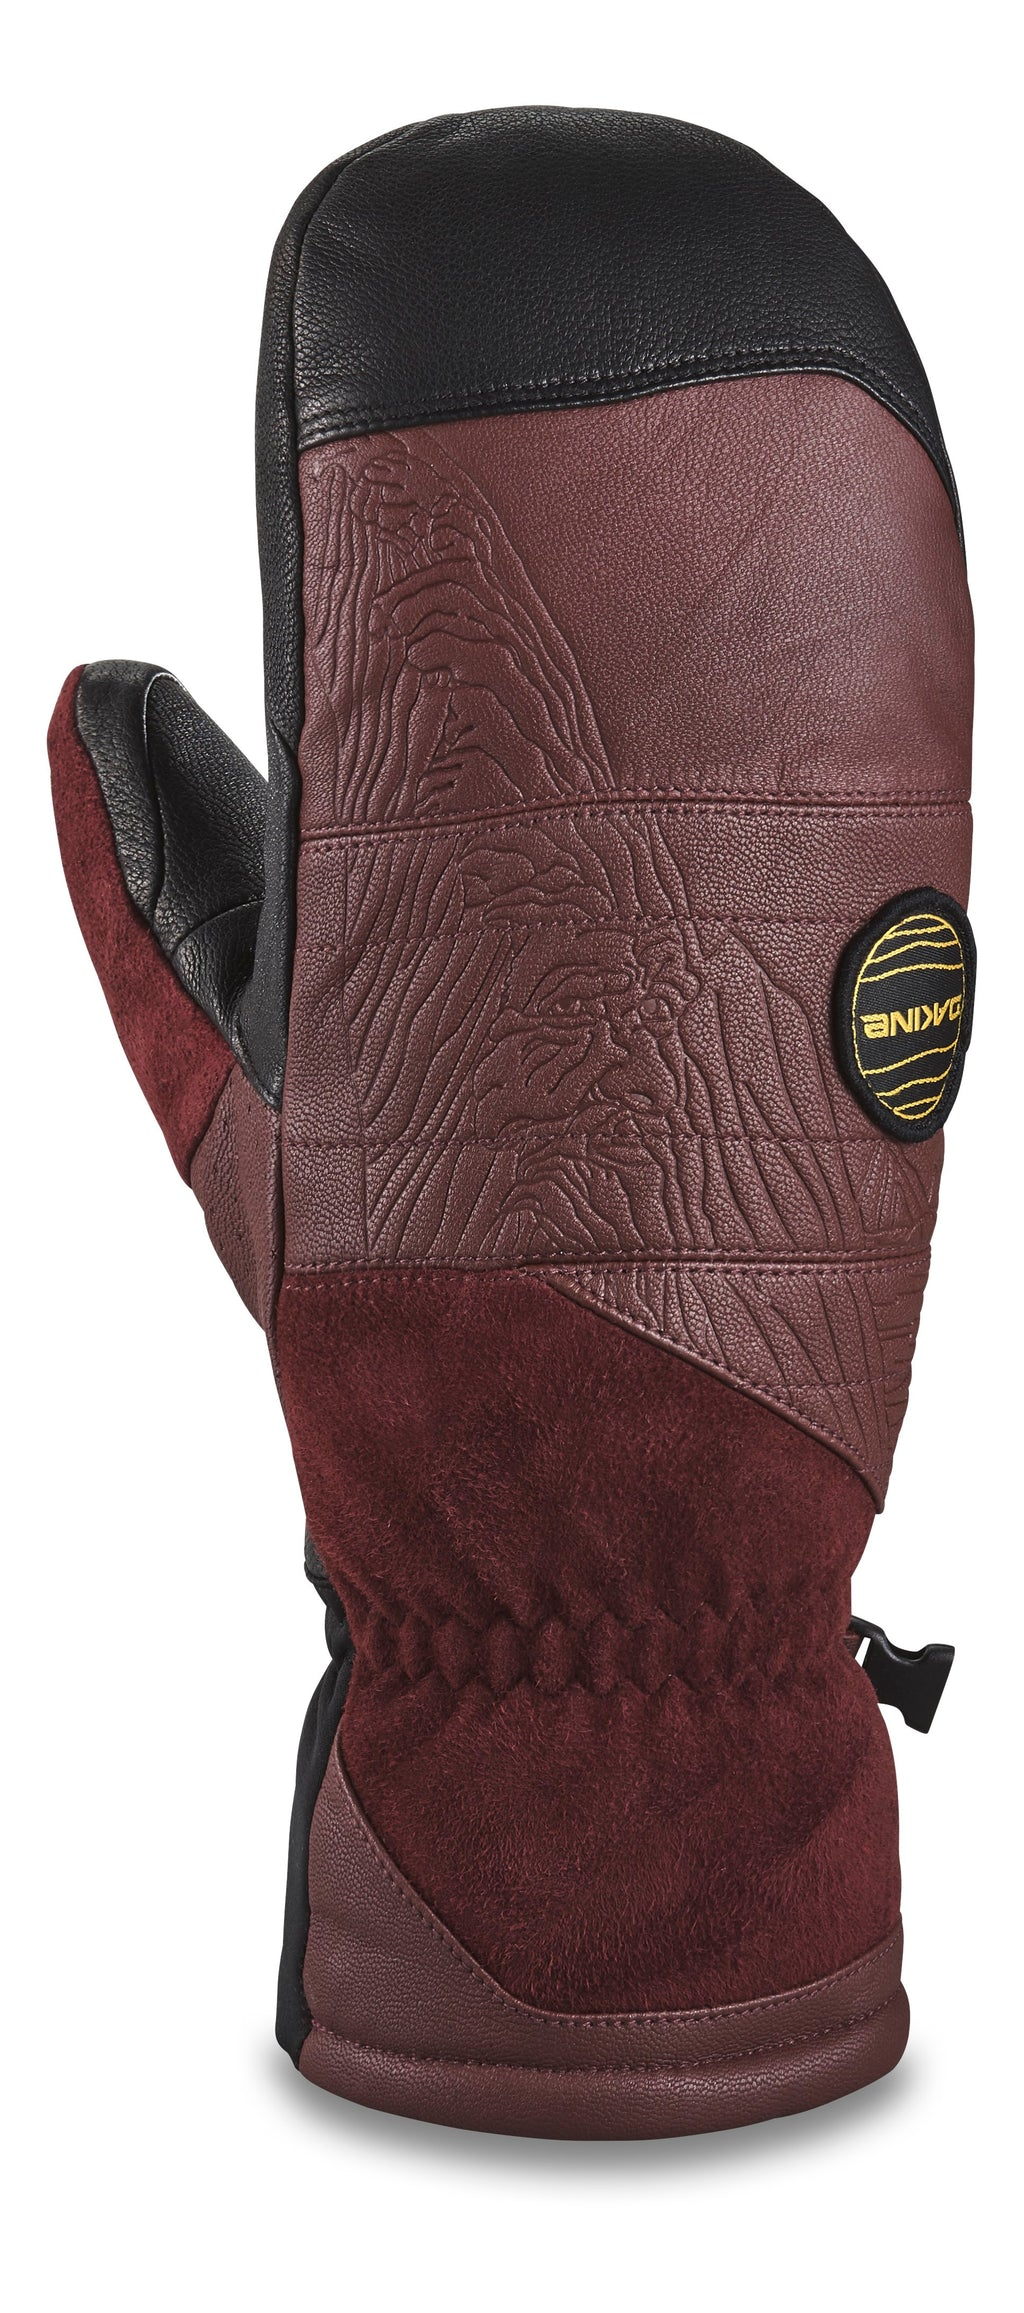 Dakine Team Baron Gore-Tex Mitt - Men's